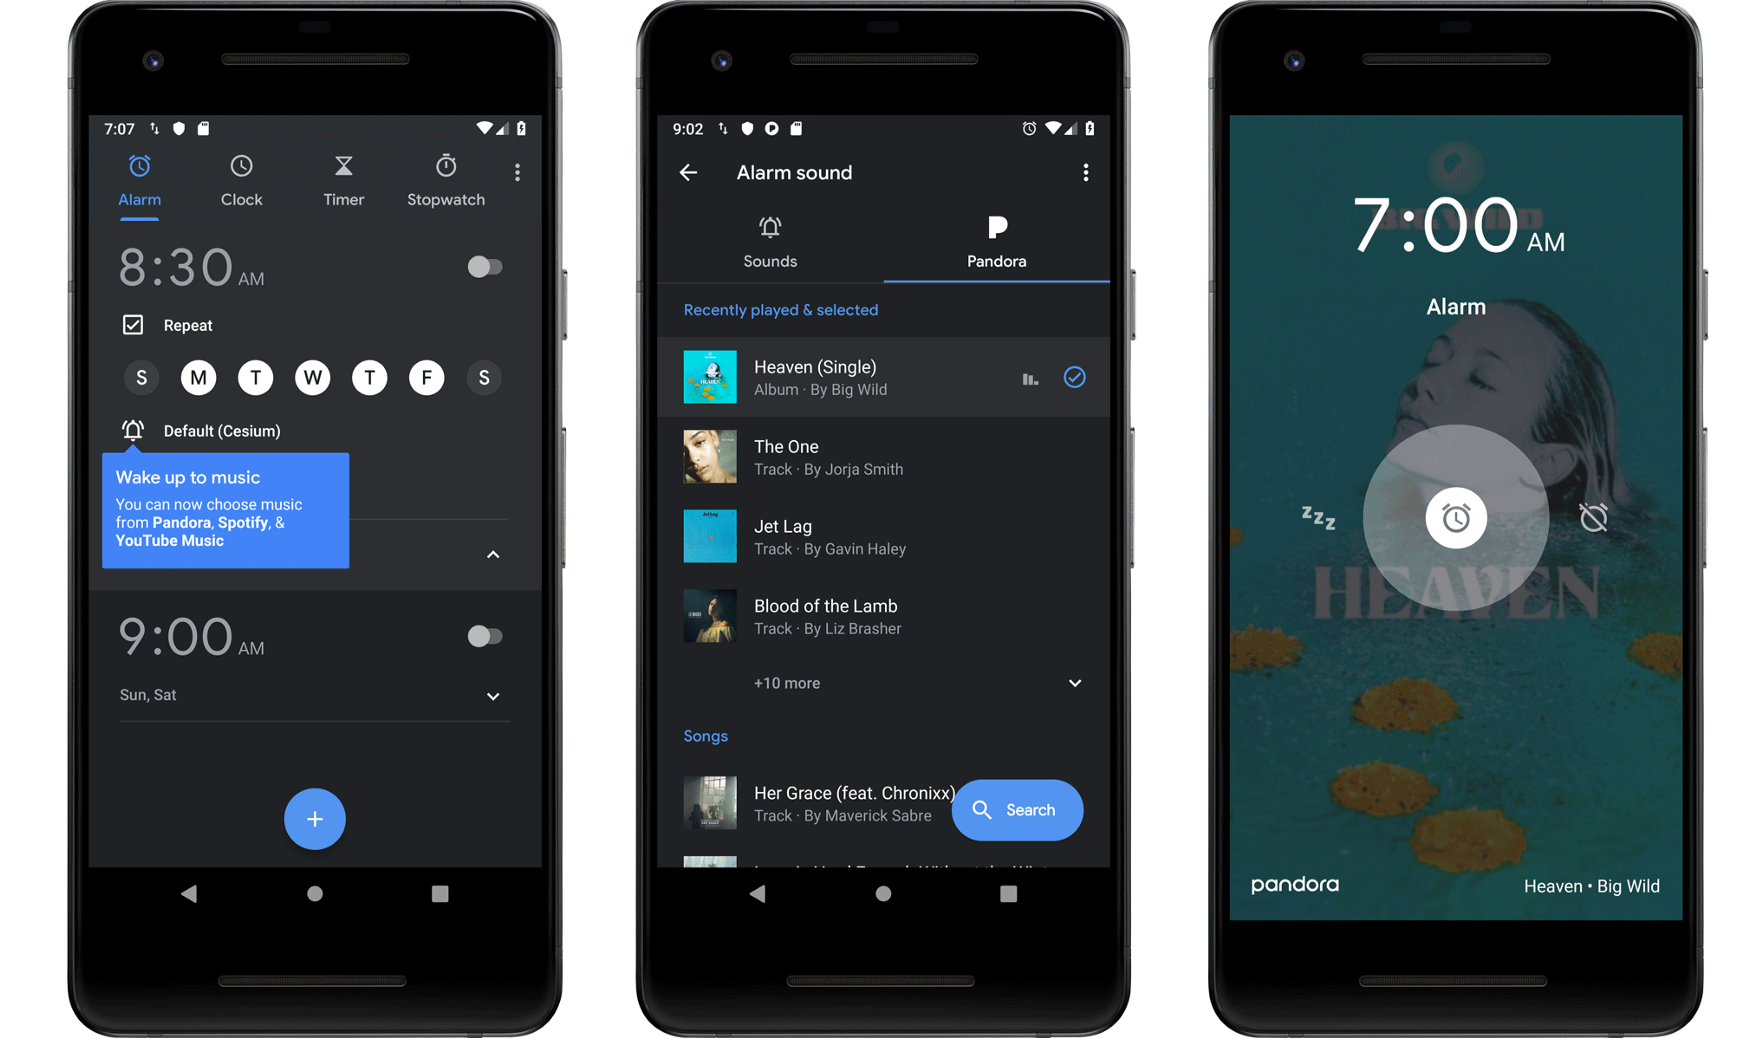 Wake up to Pandora with the Clock app from Google